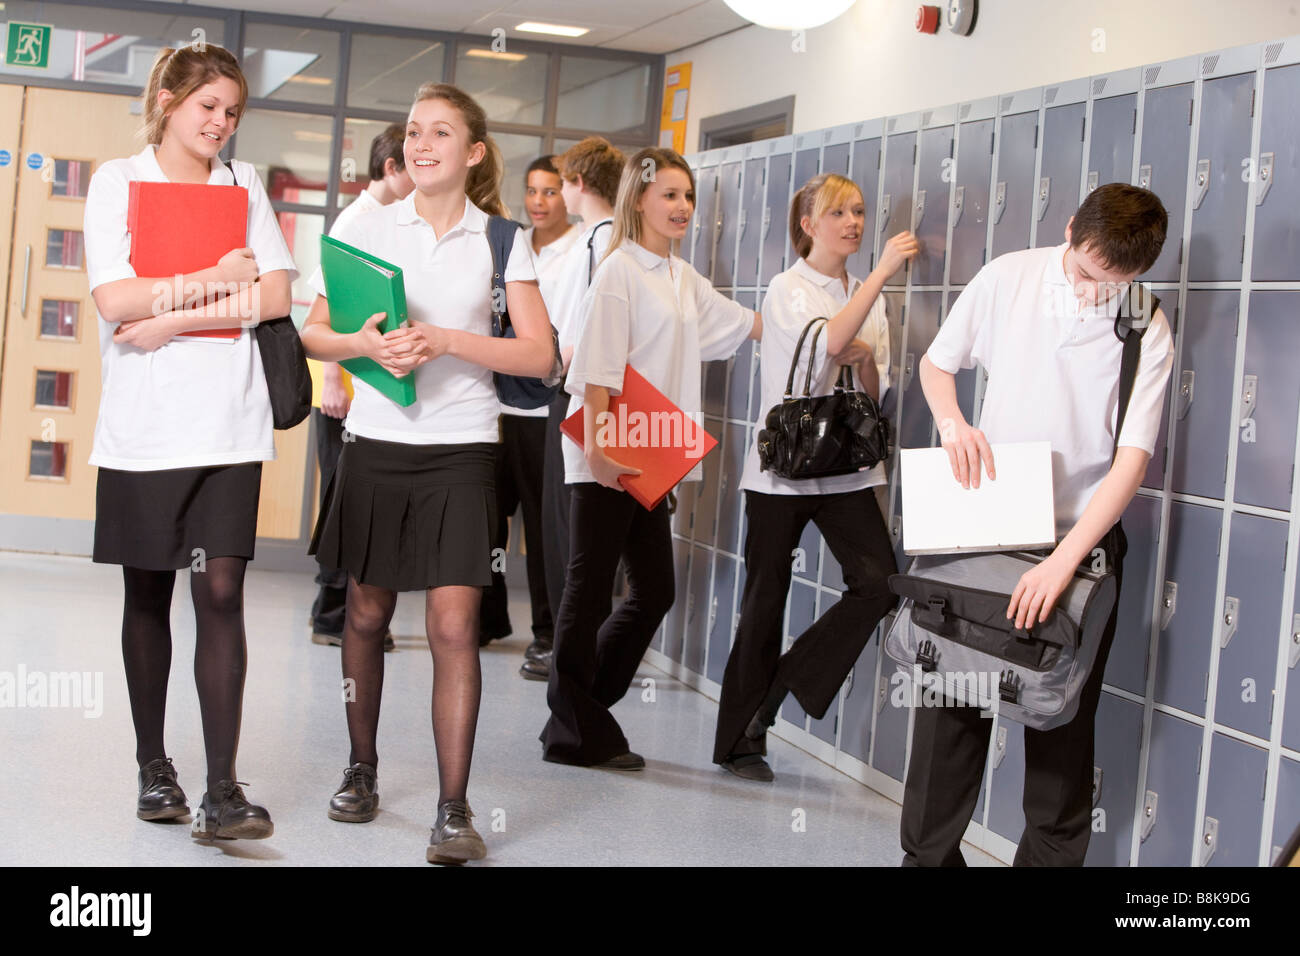 Secondary school students in a school hallway - Stock Image